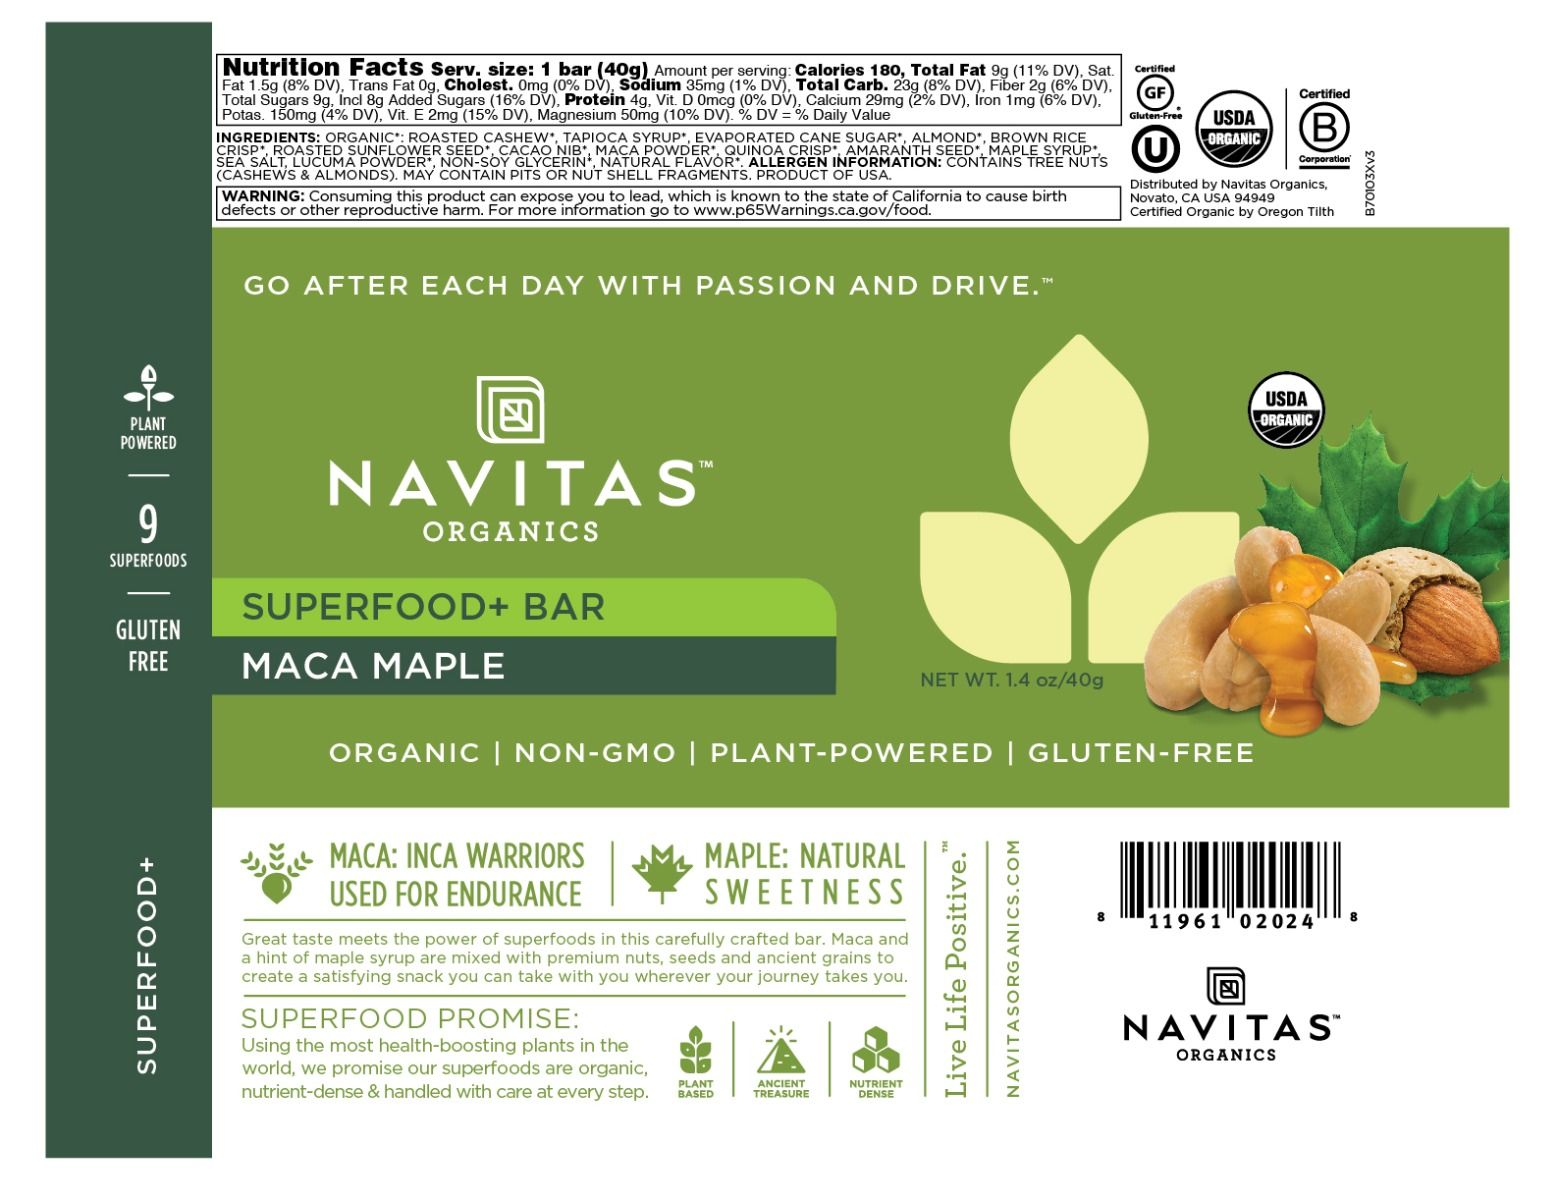 Superfood + Bar Maca Maple